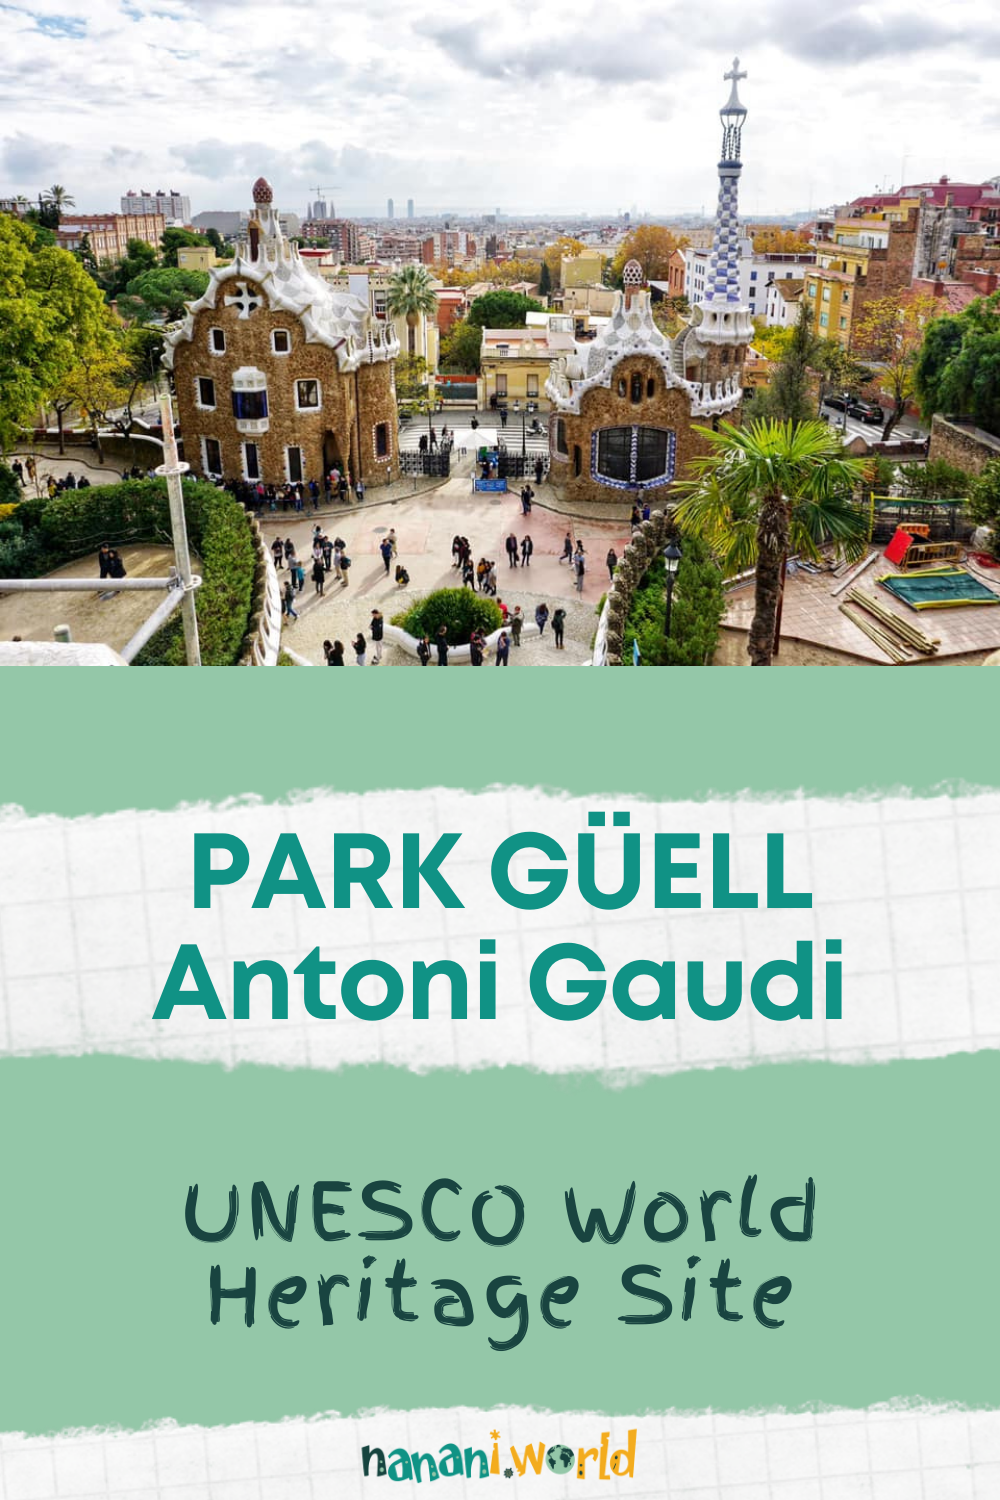 Park Guell UNESCO World Heritage Site